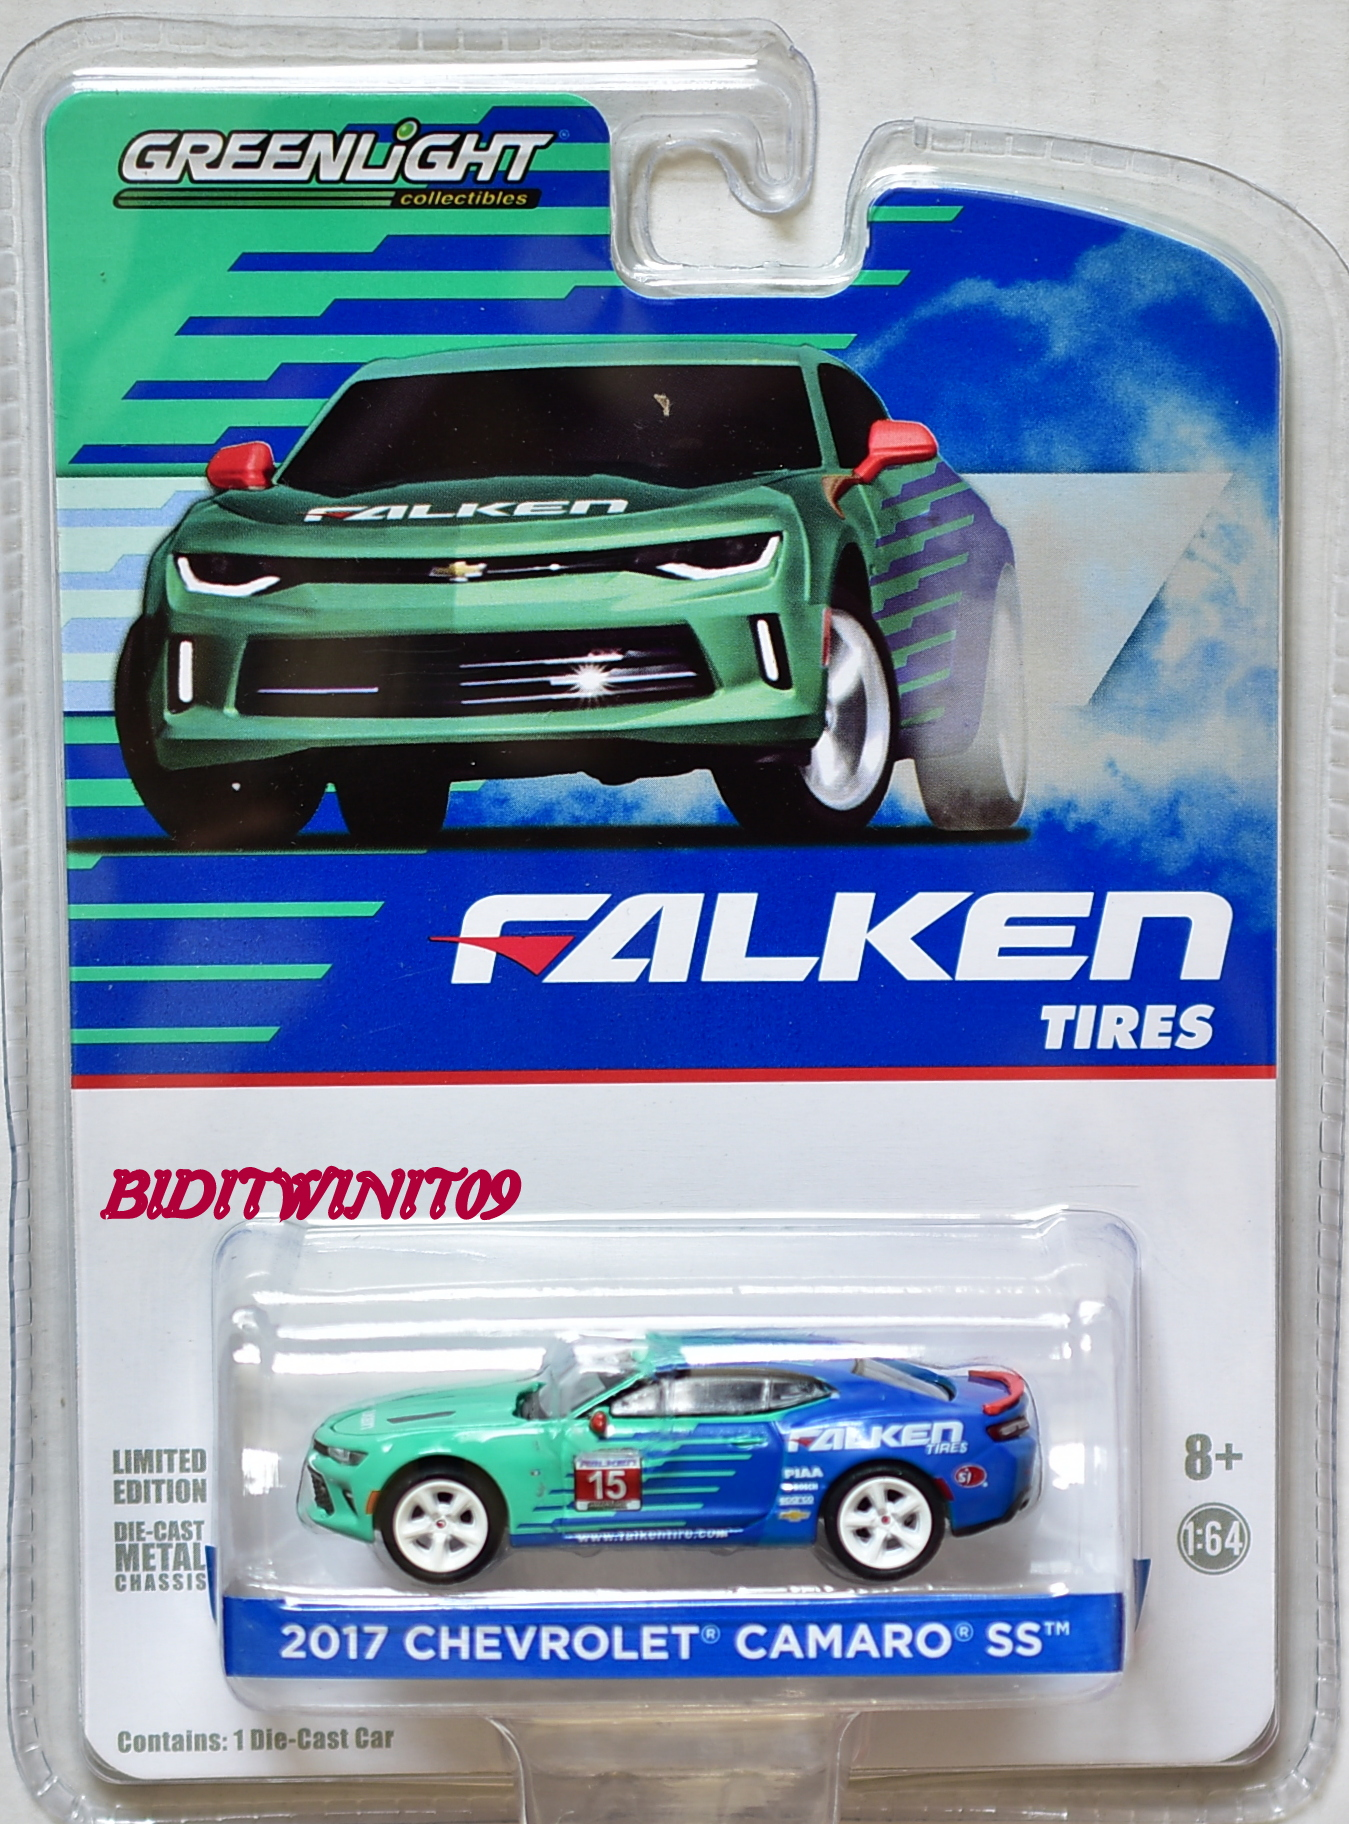 GREENLIGHT COLLECTIBLES 2017 CHEVROLET CAMARO SS FALKEN TIRES